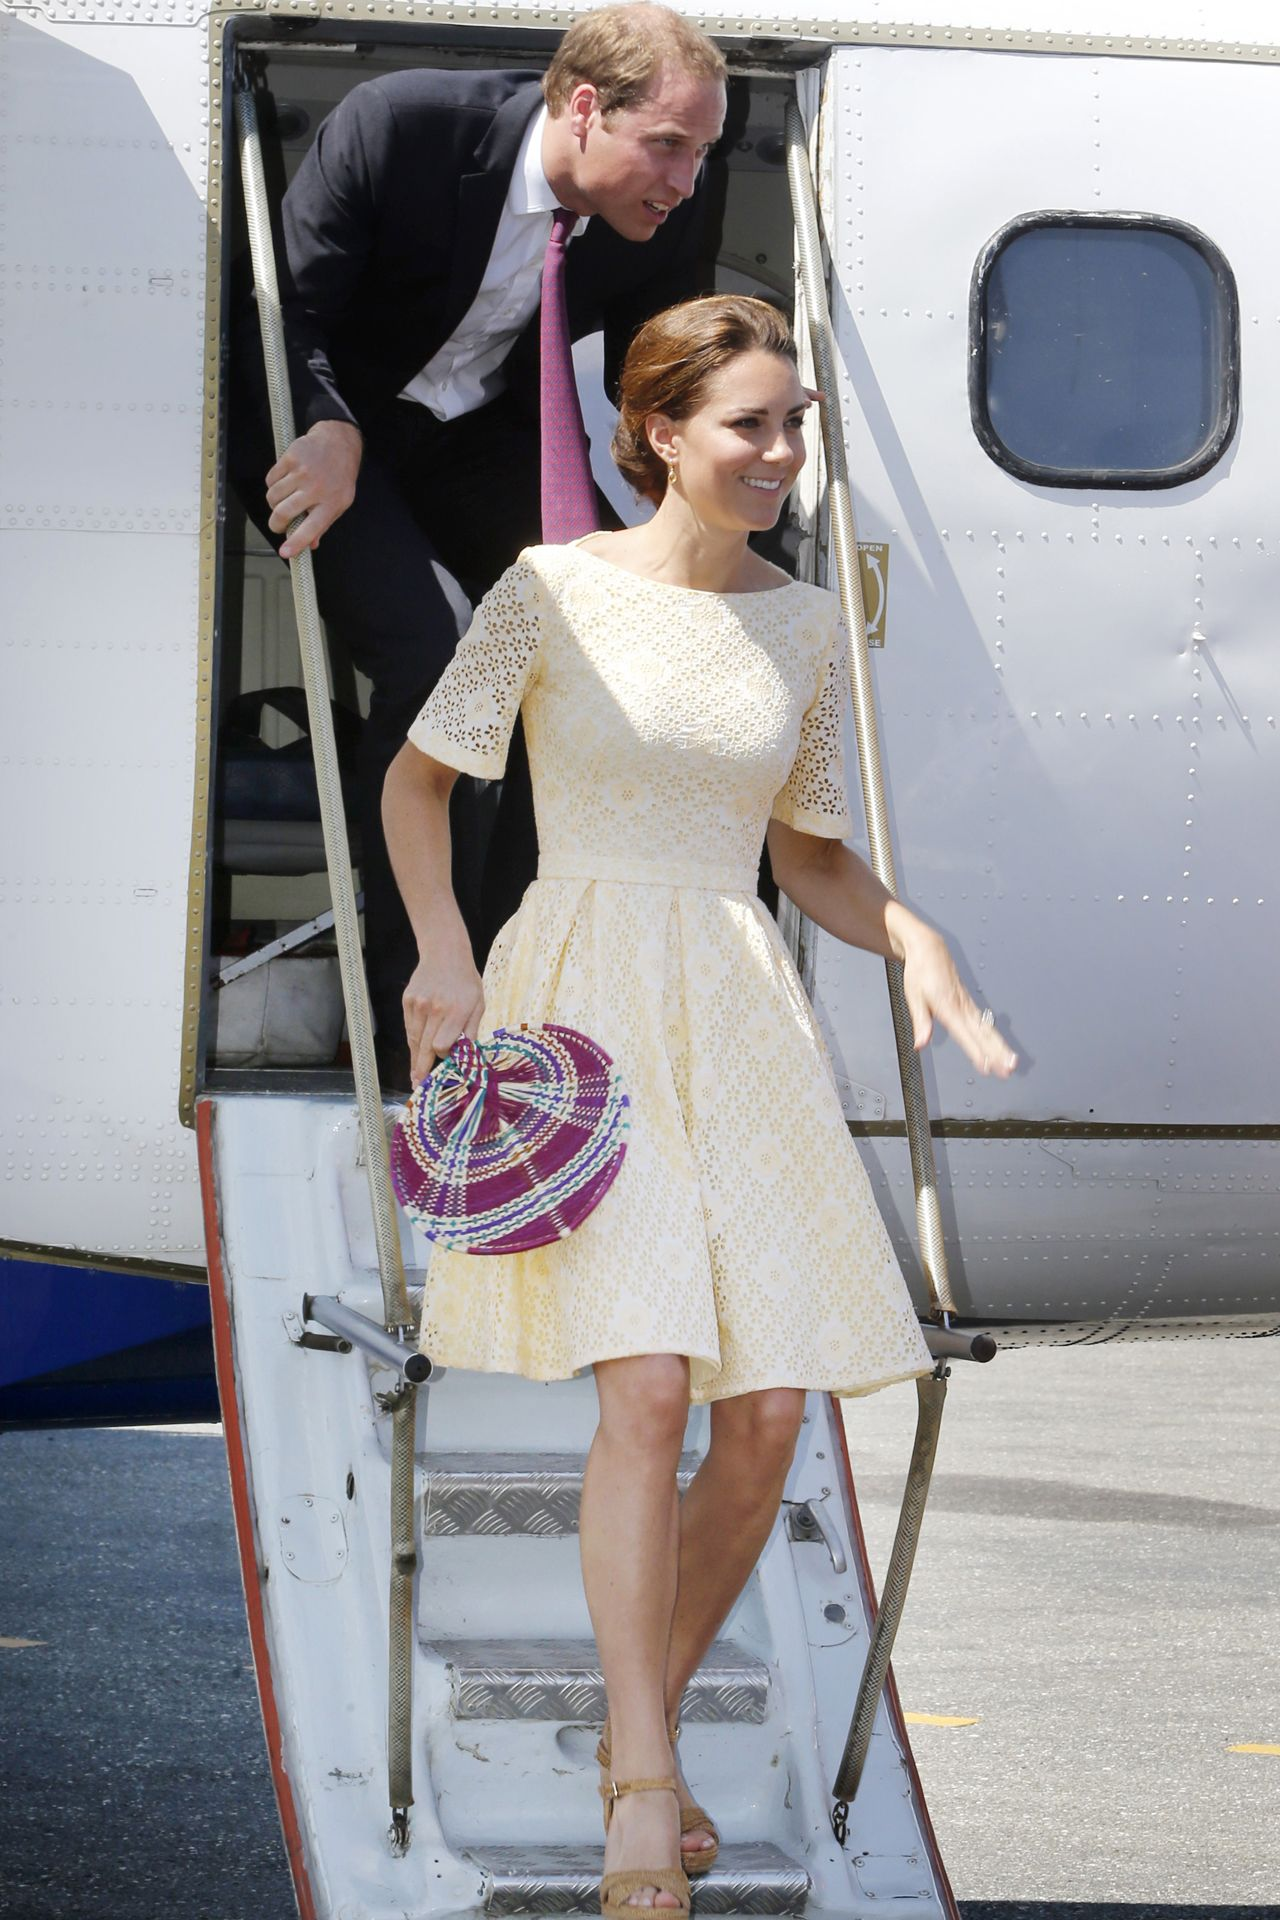 SEPTEMBER 18 2012 - A primrose yellow dress and a patterned fan were the Duchess' style choices for the last leg of her Diamond Jubilee tour with Prince William - on the islands of Tuvalu.